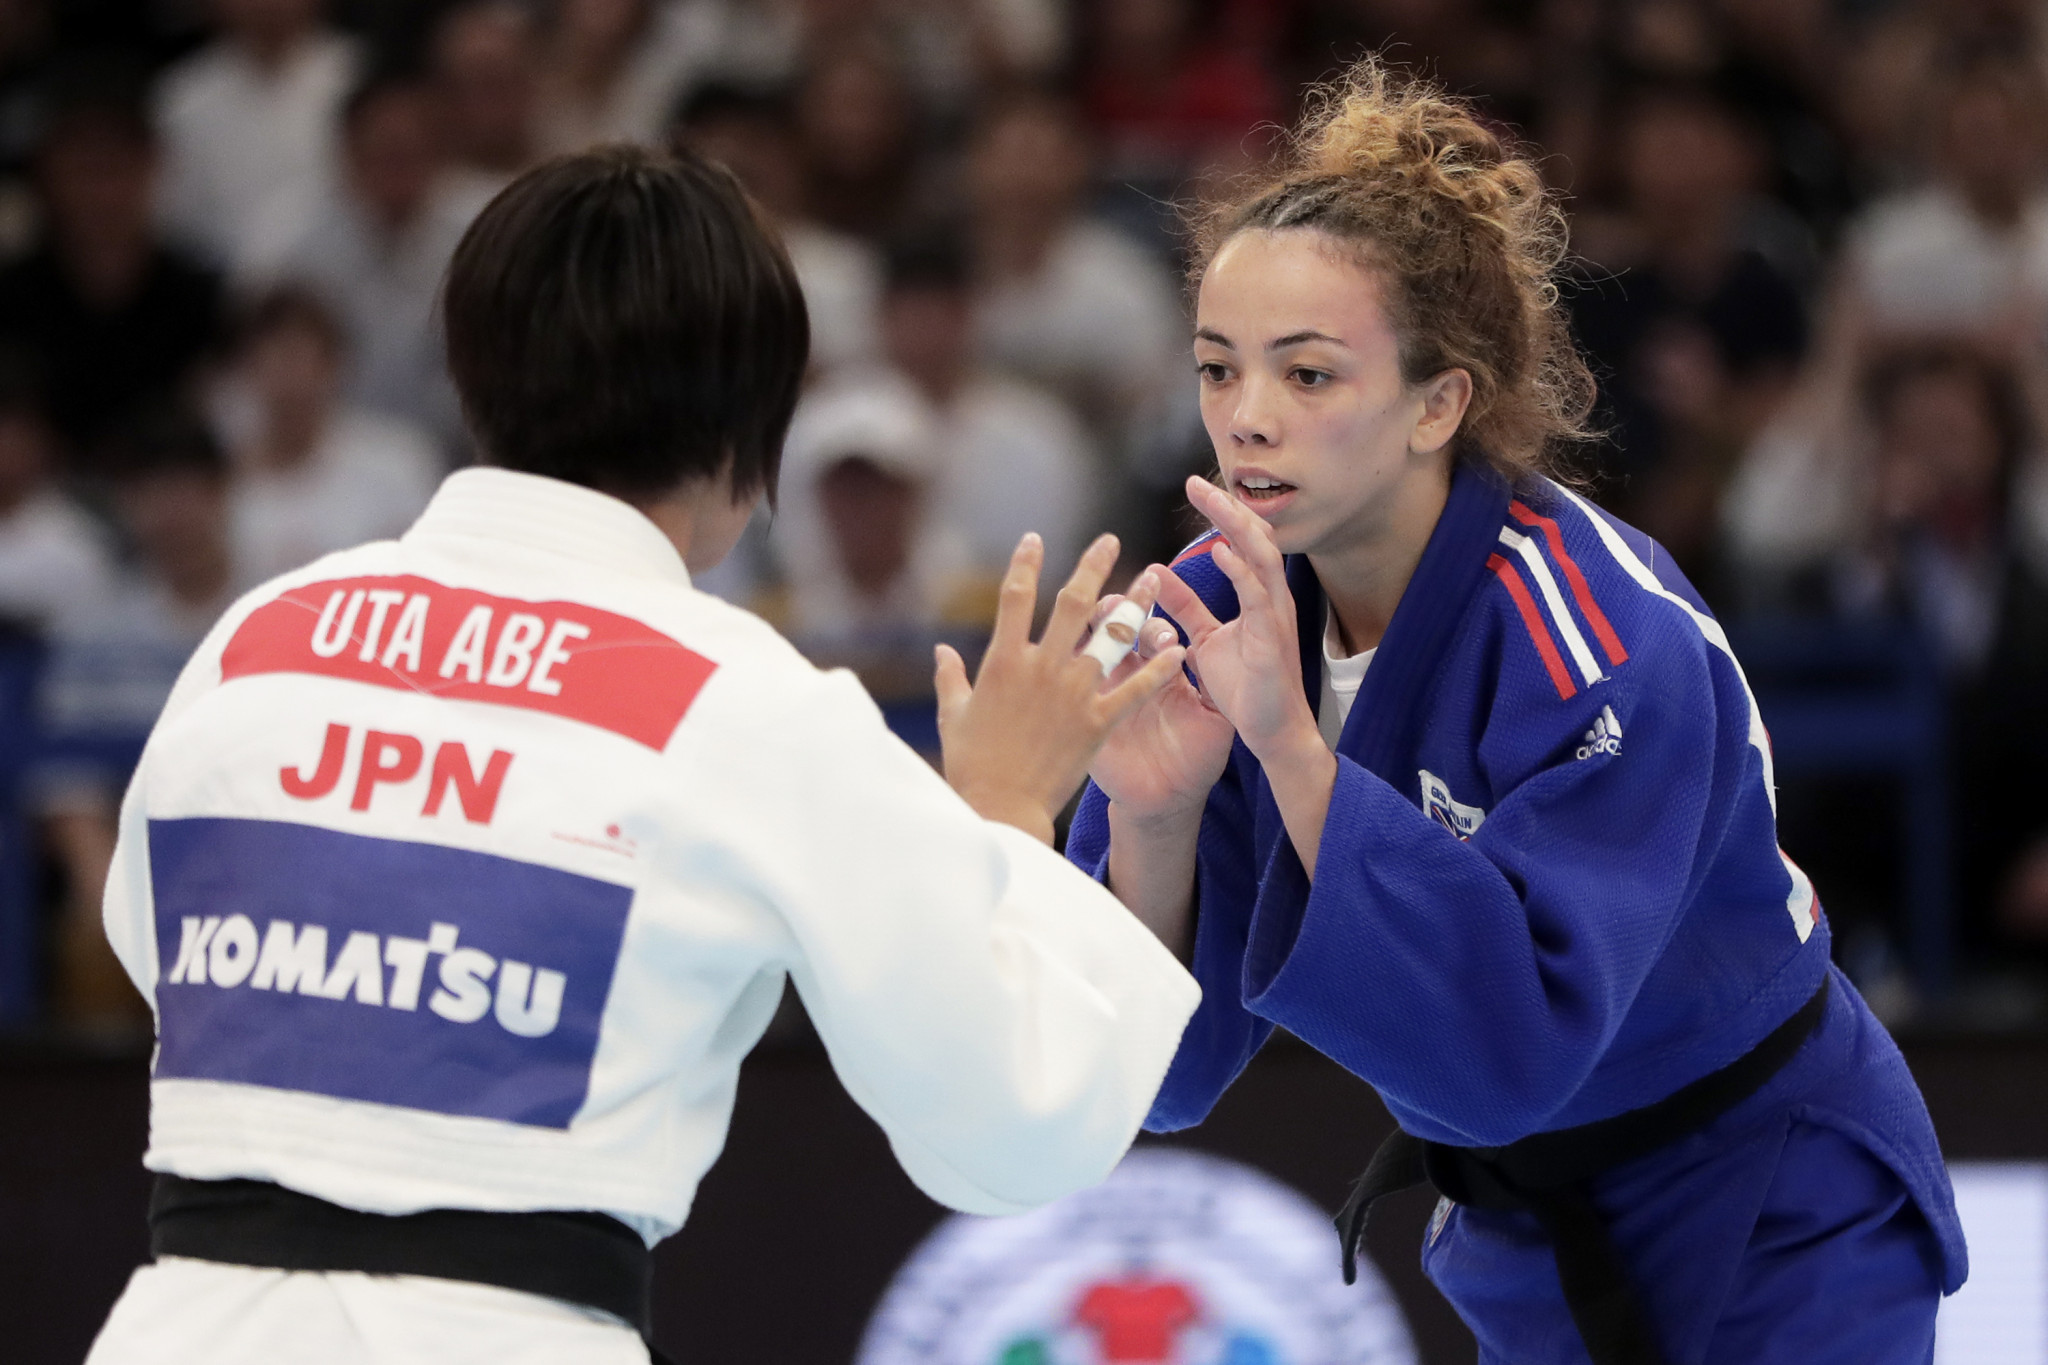 Britain's Chelsie Giles and Japan's Uta Abe, who faced each other in the quarter-finals of the 2019 World Judo Championships in Tokyo, could meet in the quarter-finals of the IJF Grand Slam again in Düsseldorf  ©Getty Images